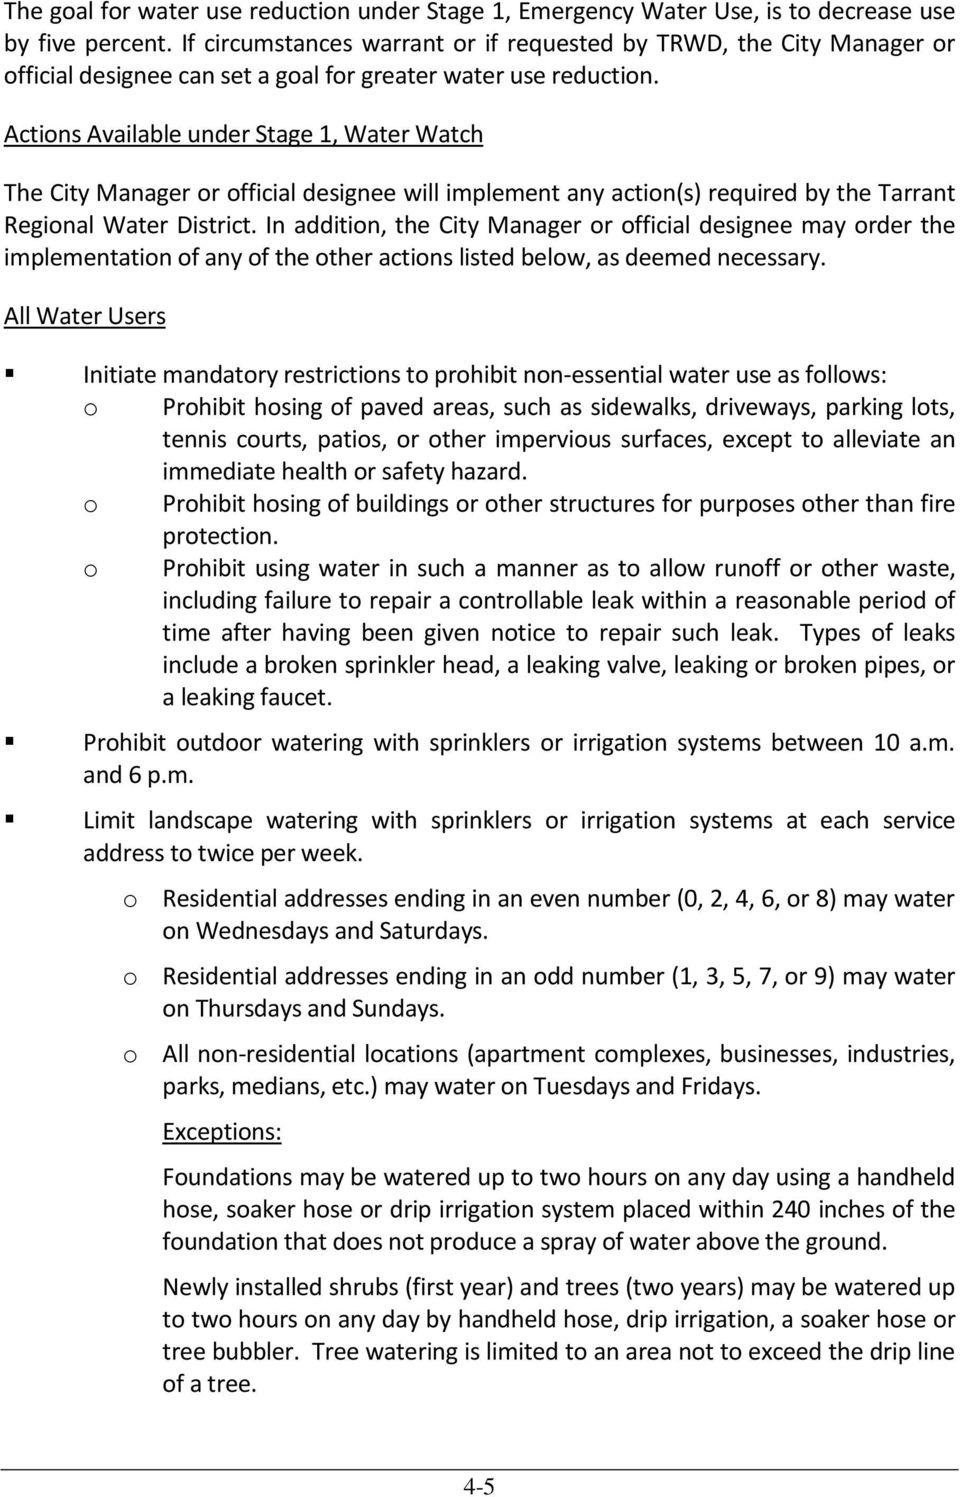 Actions Available under Stage 1, Water Watch The City Manager or official designee will implement any action(s) required by the Tarrant Regional Water District.